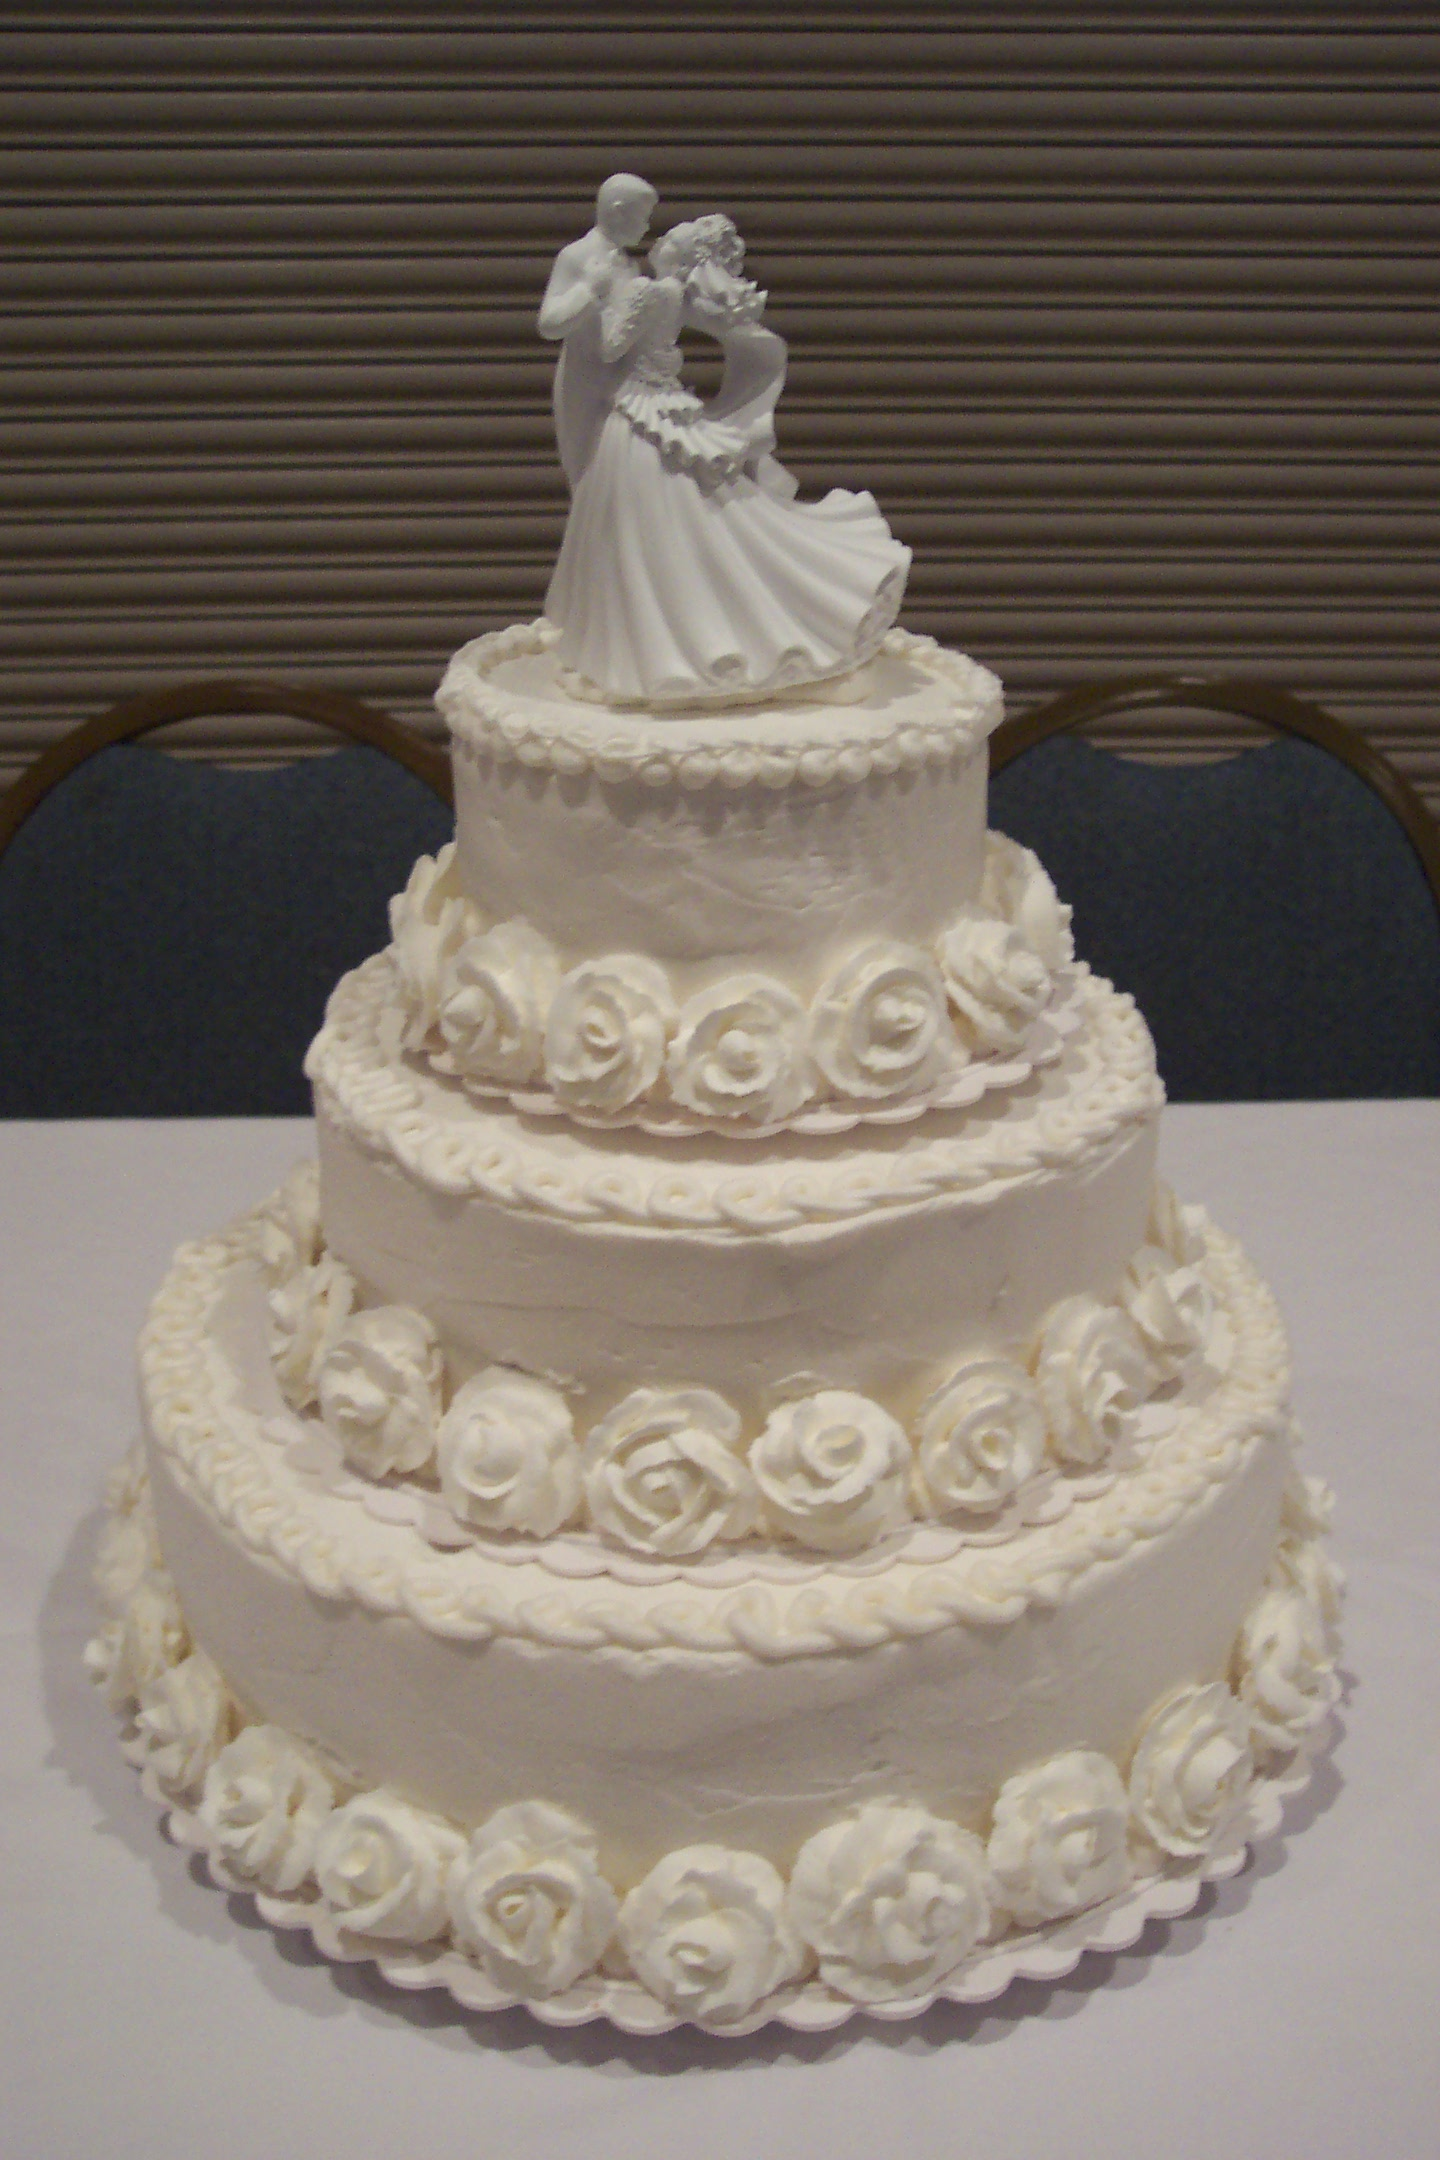 3-Tier Stacked Round Cake with Royal Icing Roses